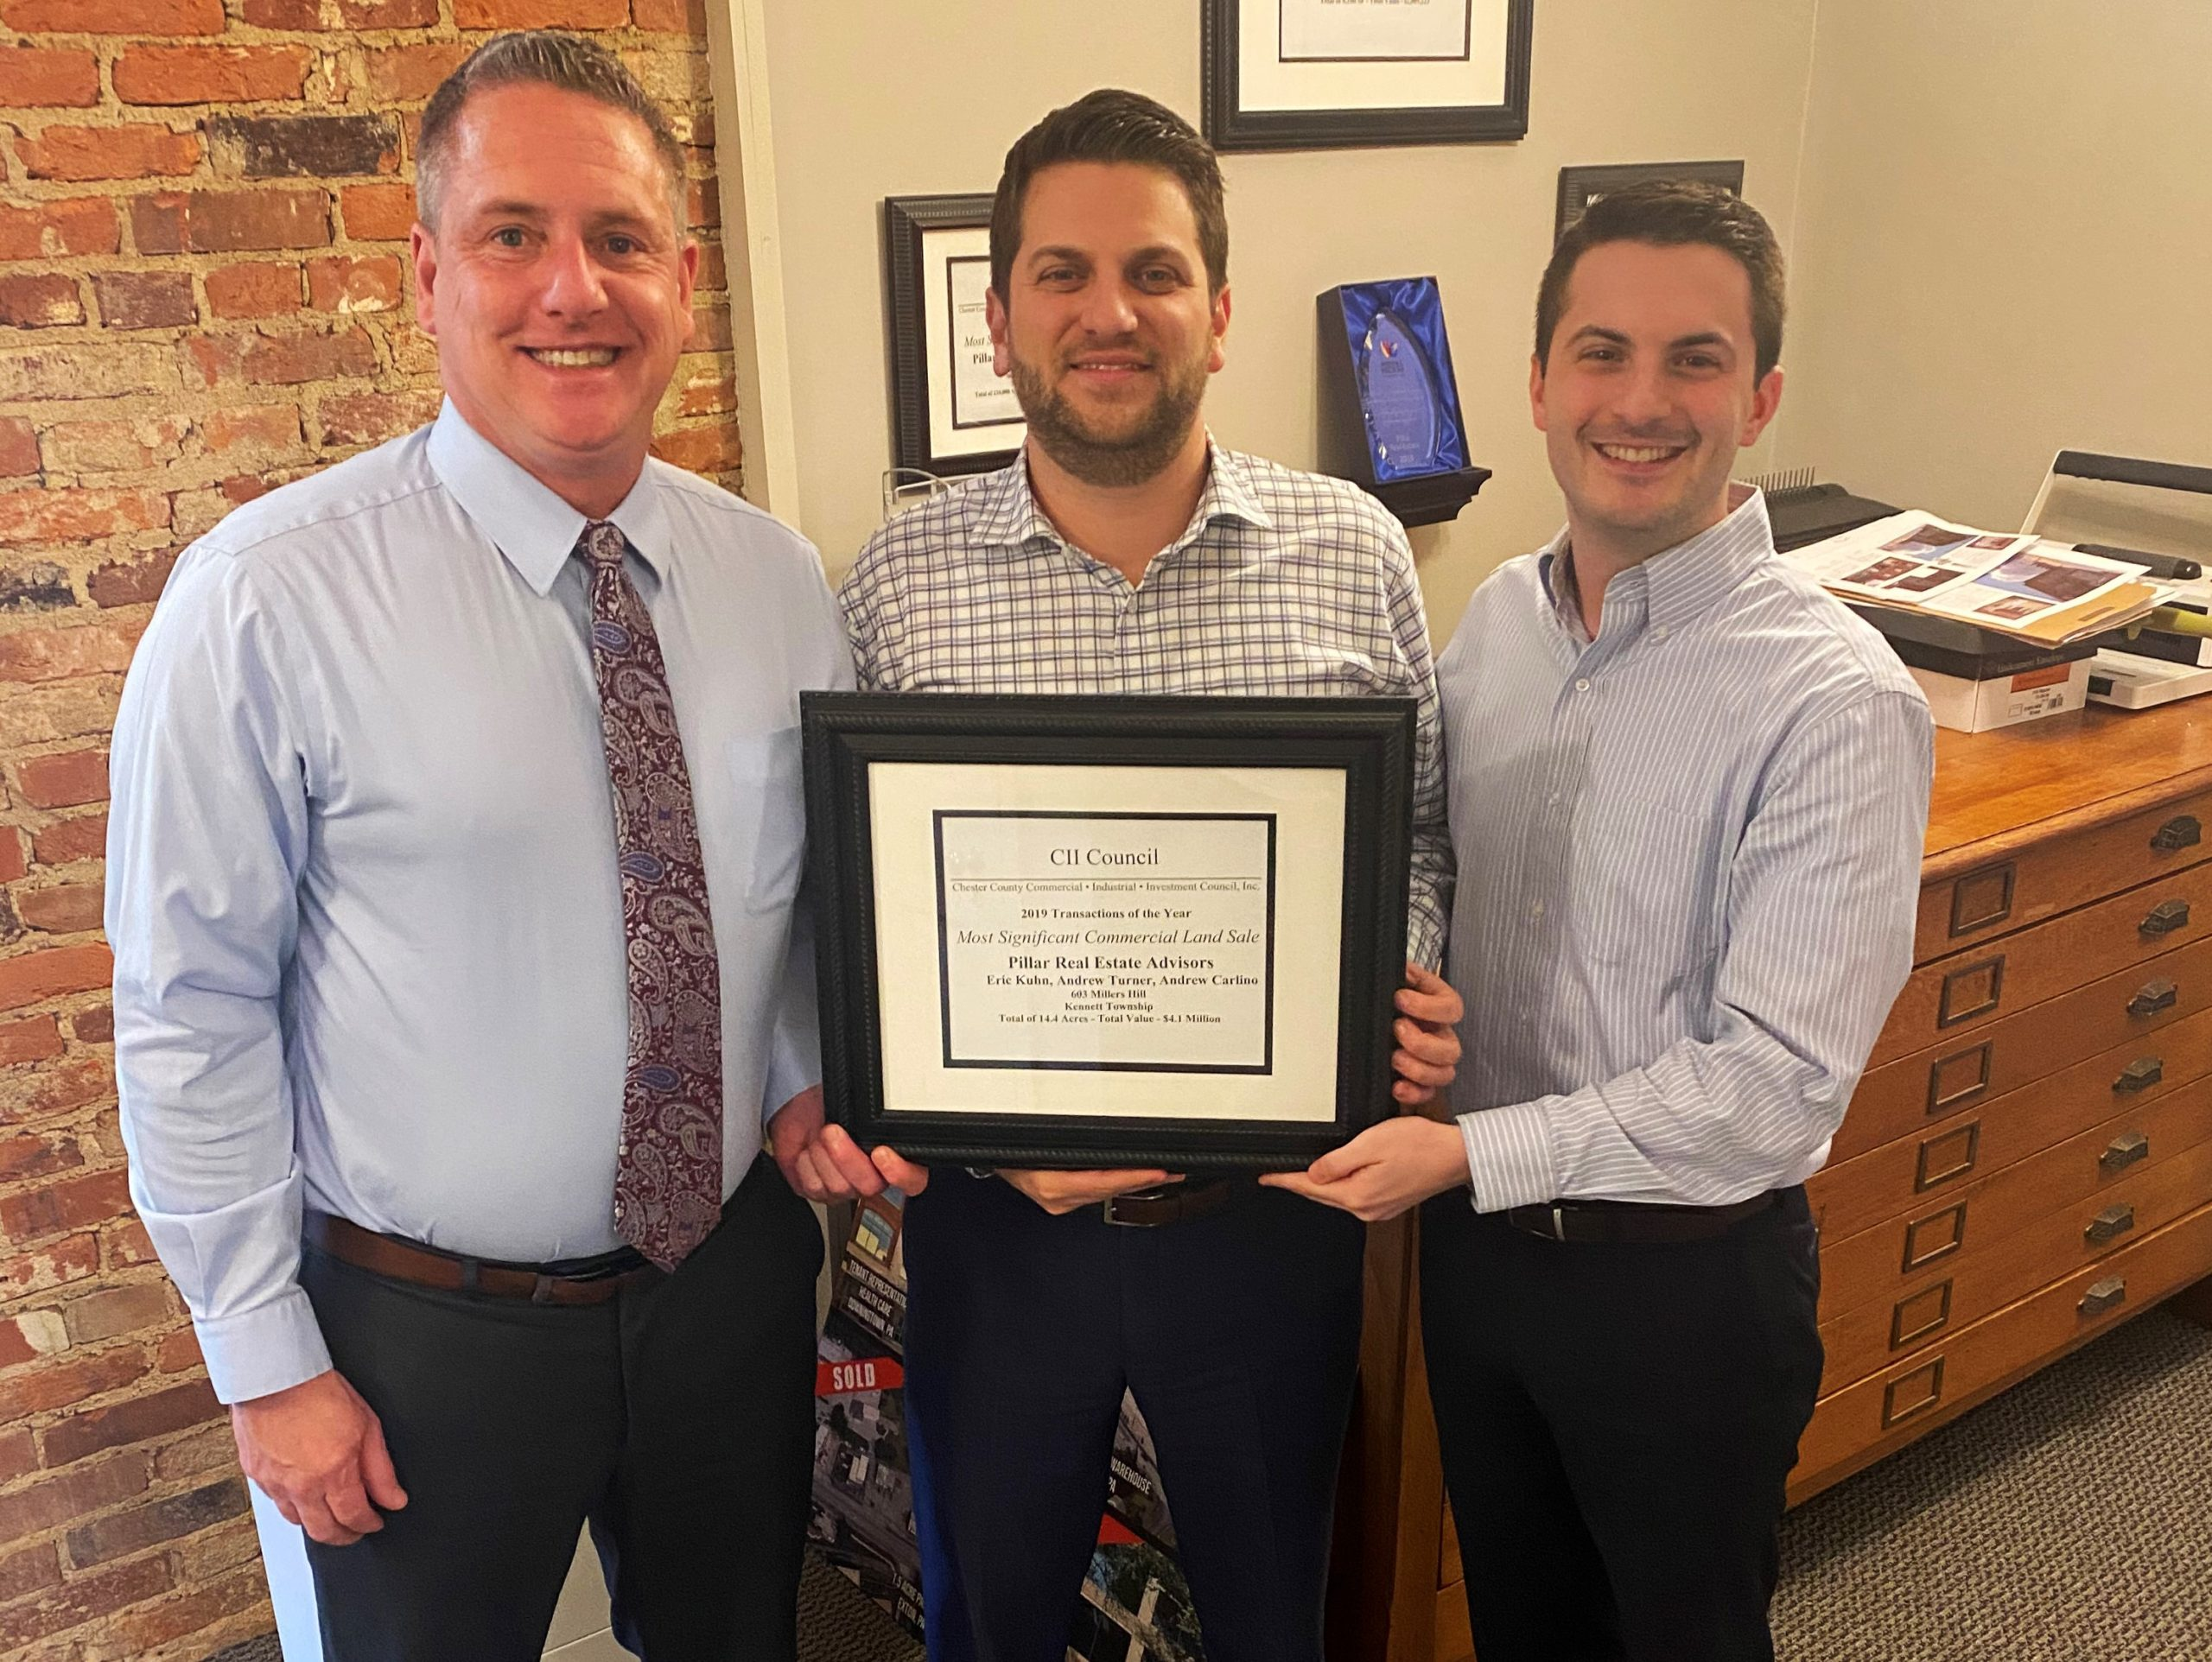 West Chester's Pillar Real Estate Advisors Honored for Most Significant Commercial Land Sale in 2019